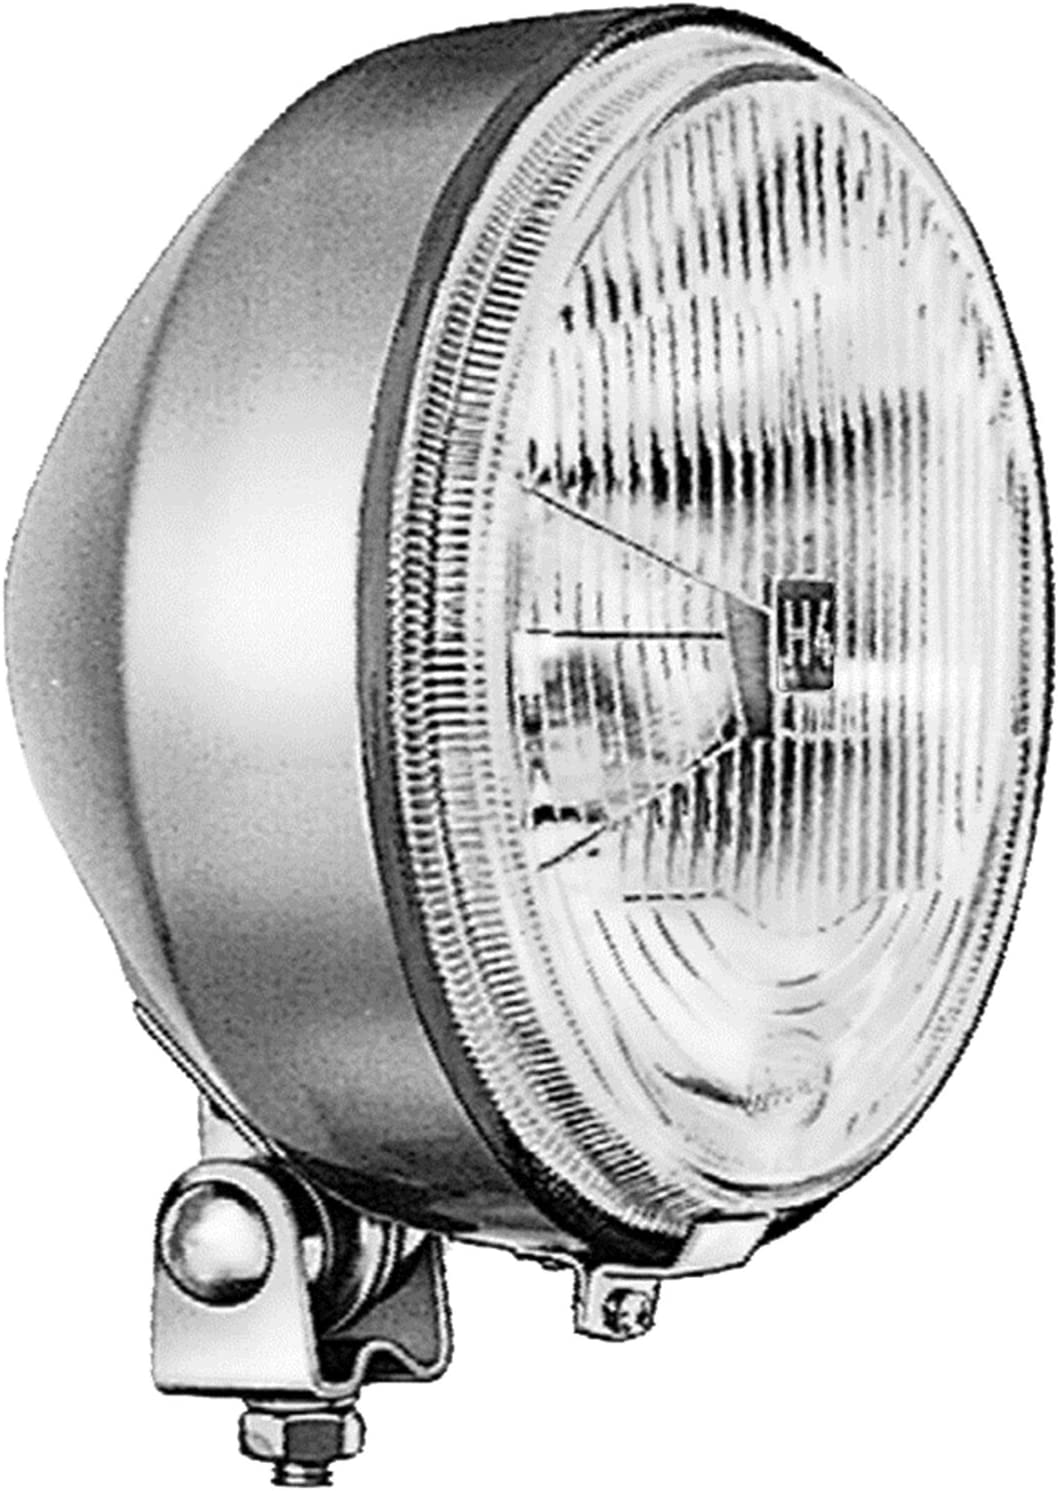 Complete Free Shipping HELLA 003099011 175mm H4 Type Single Beam Headlamp Max 56% OFF with Low High